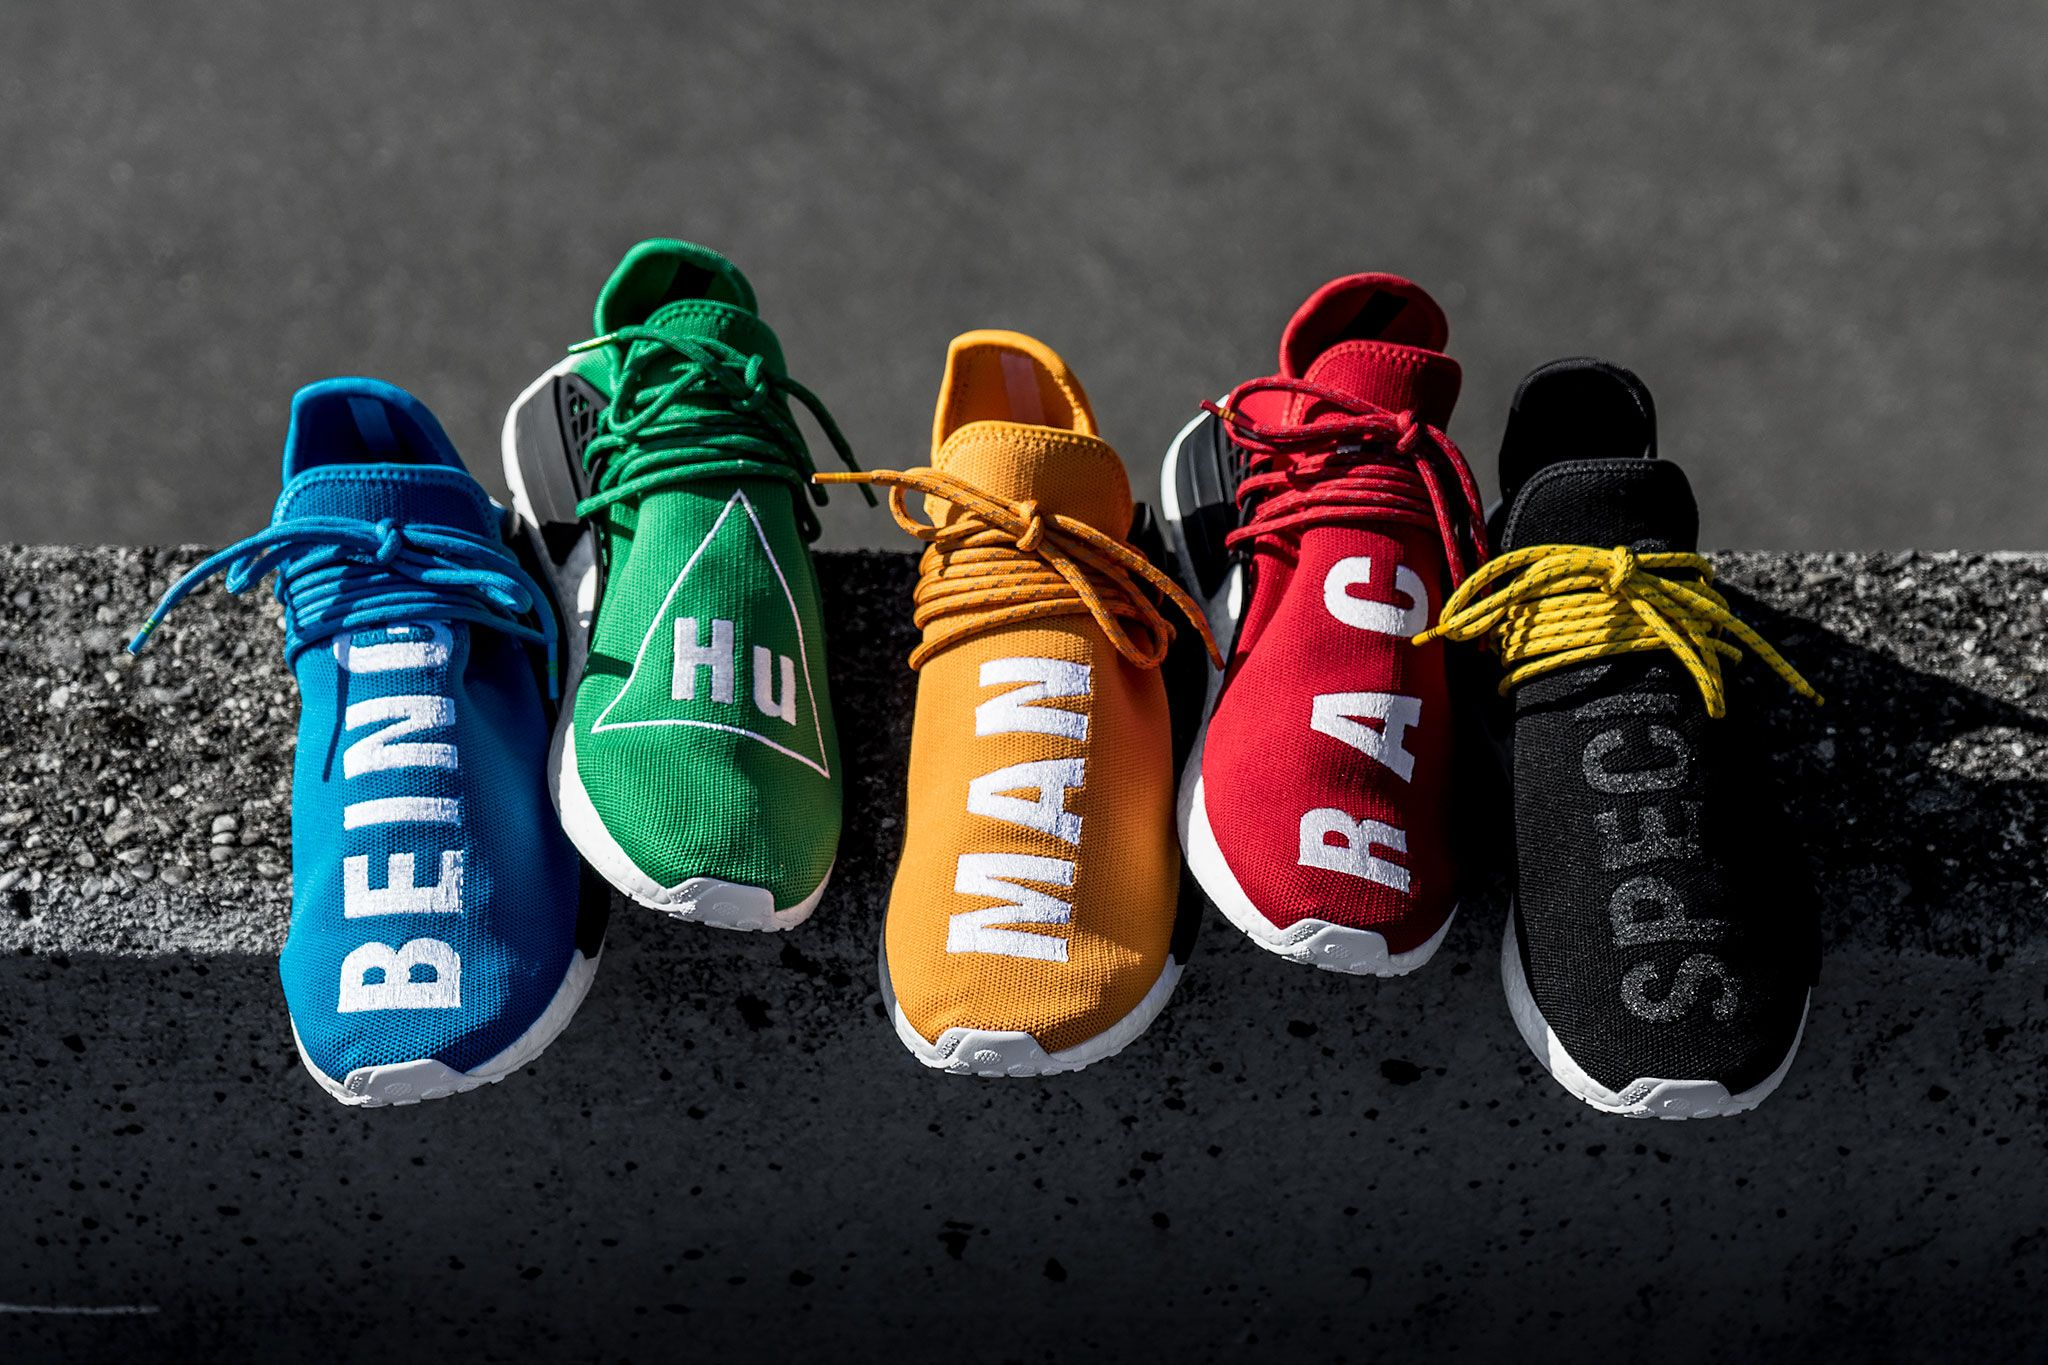 pharell williams x adidas nmd human collection friend hands family